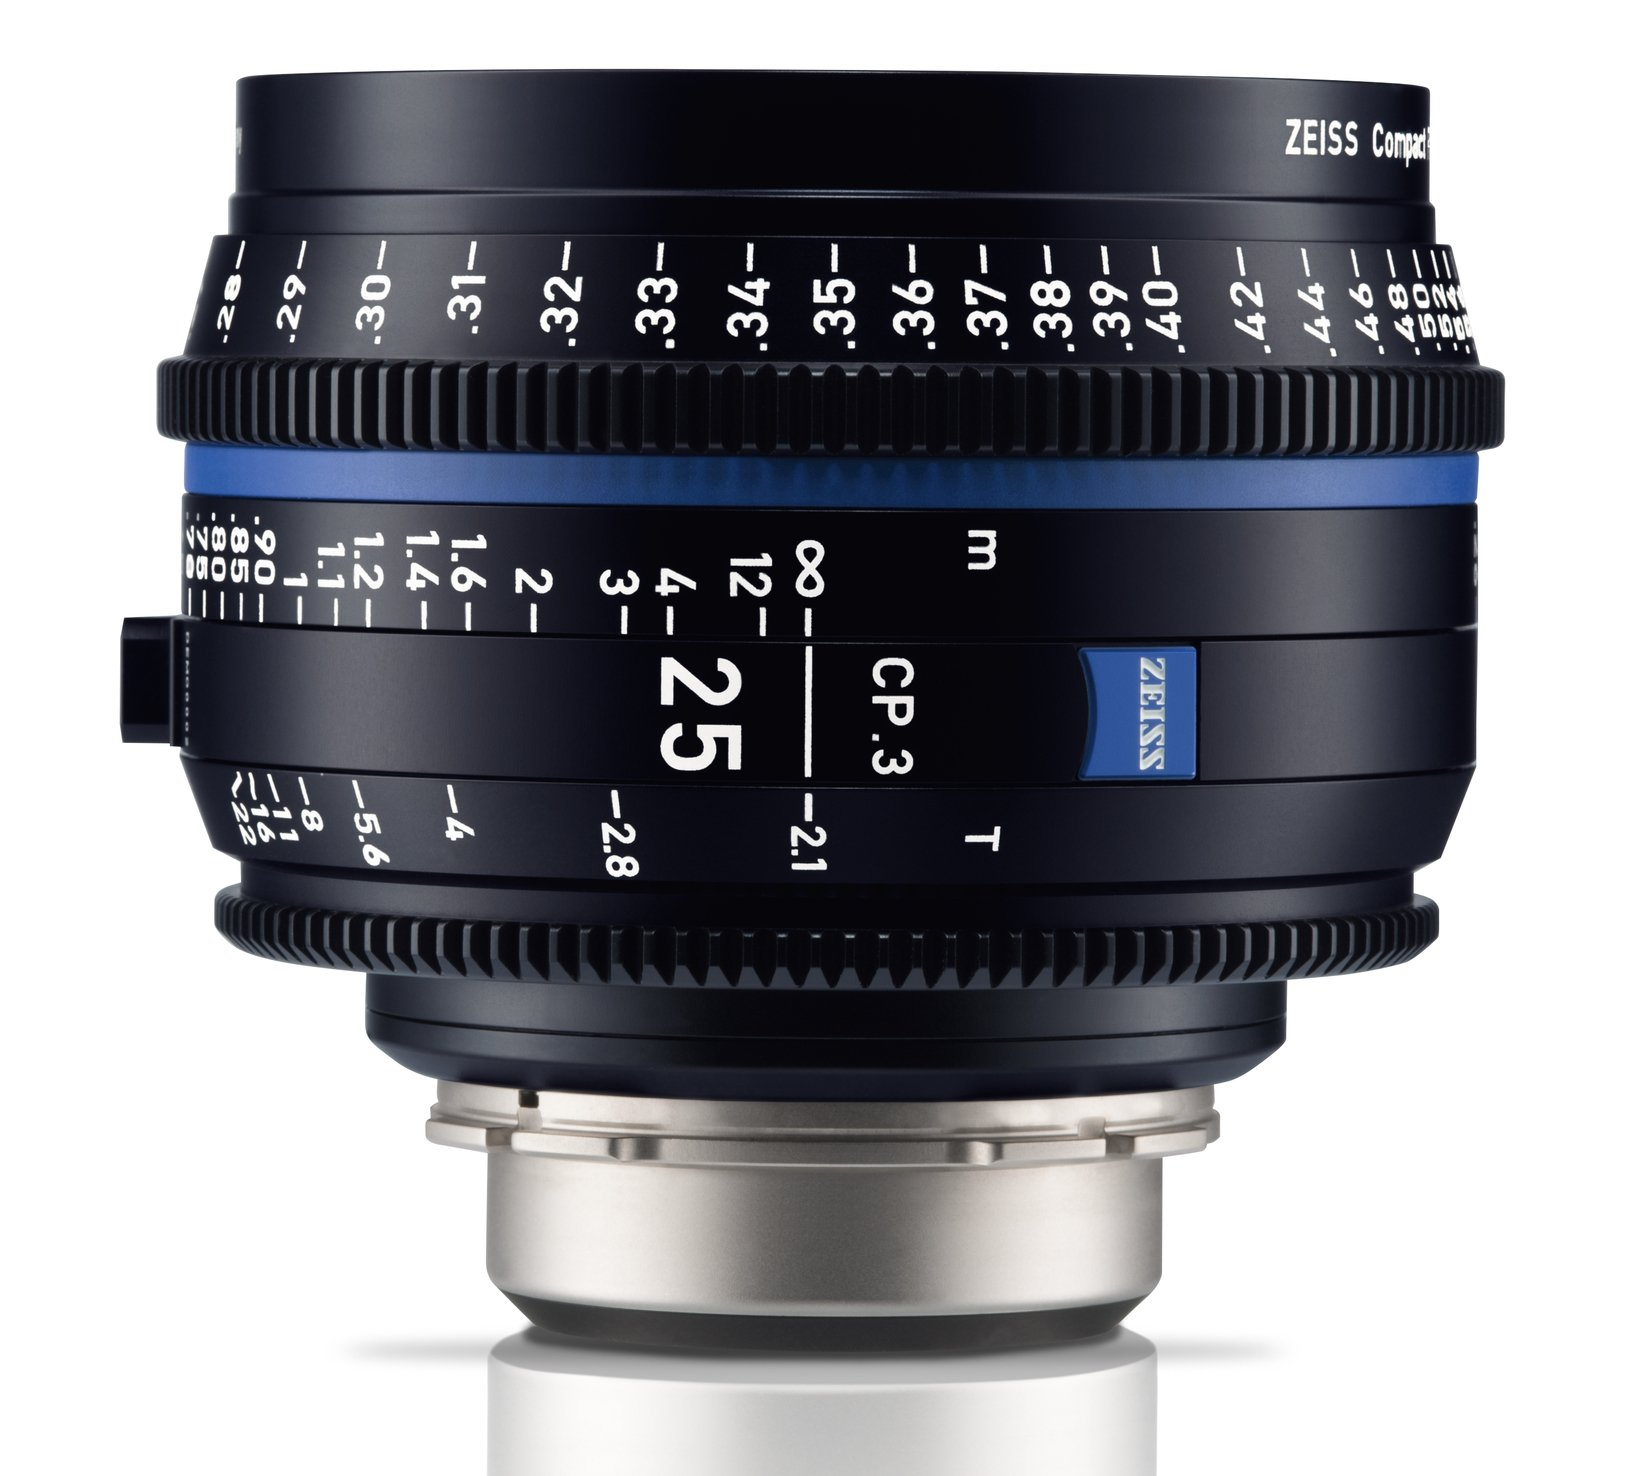 ZEISS CP.3 25 mm T2,1 Distagon T* E-mount